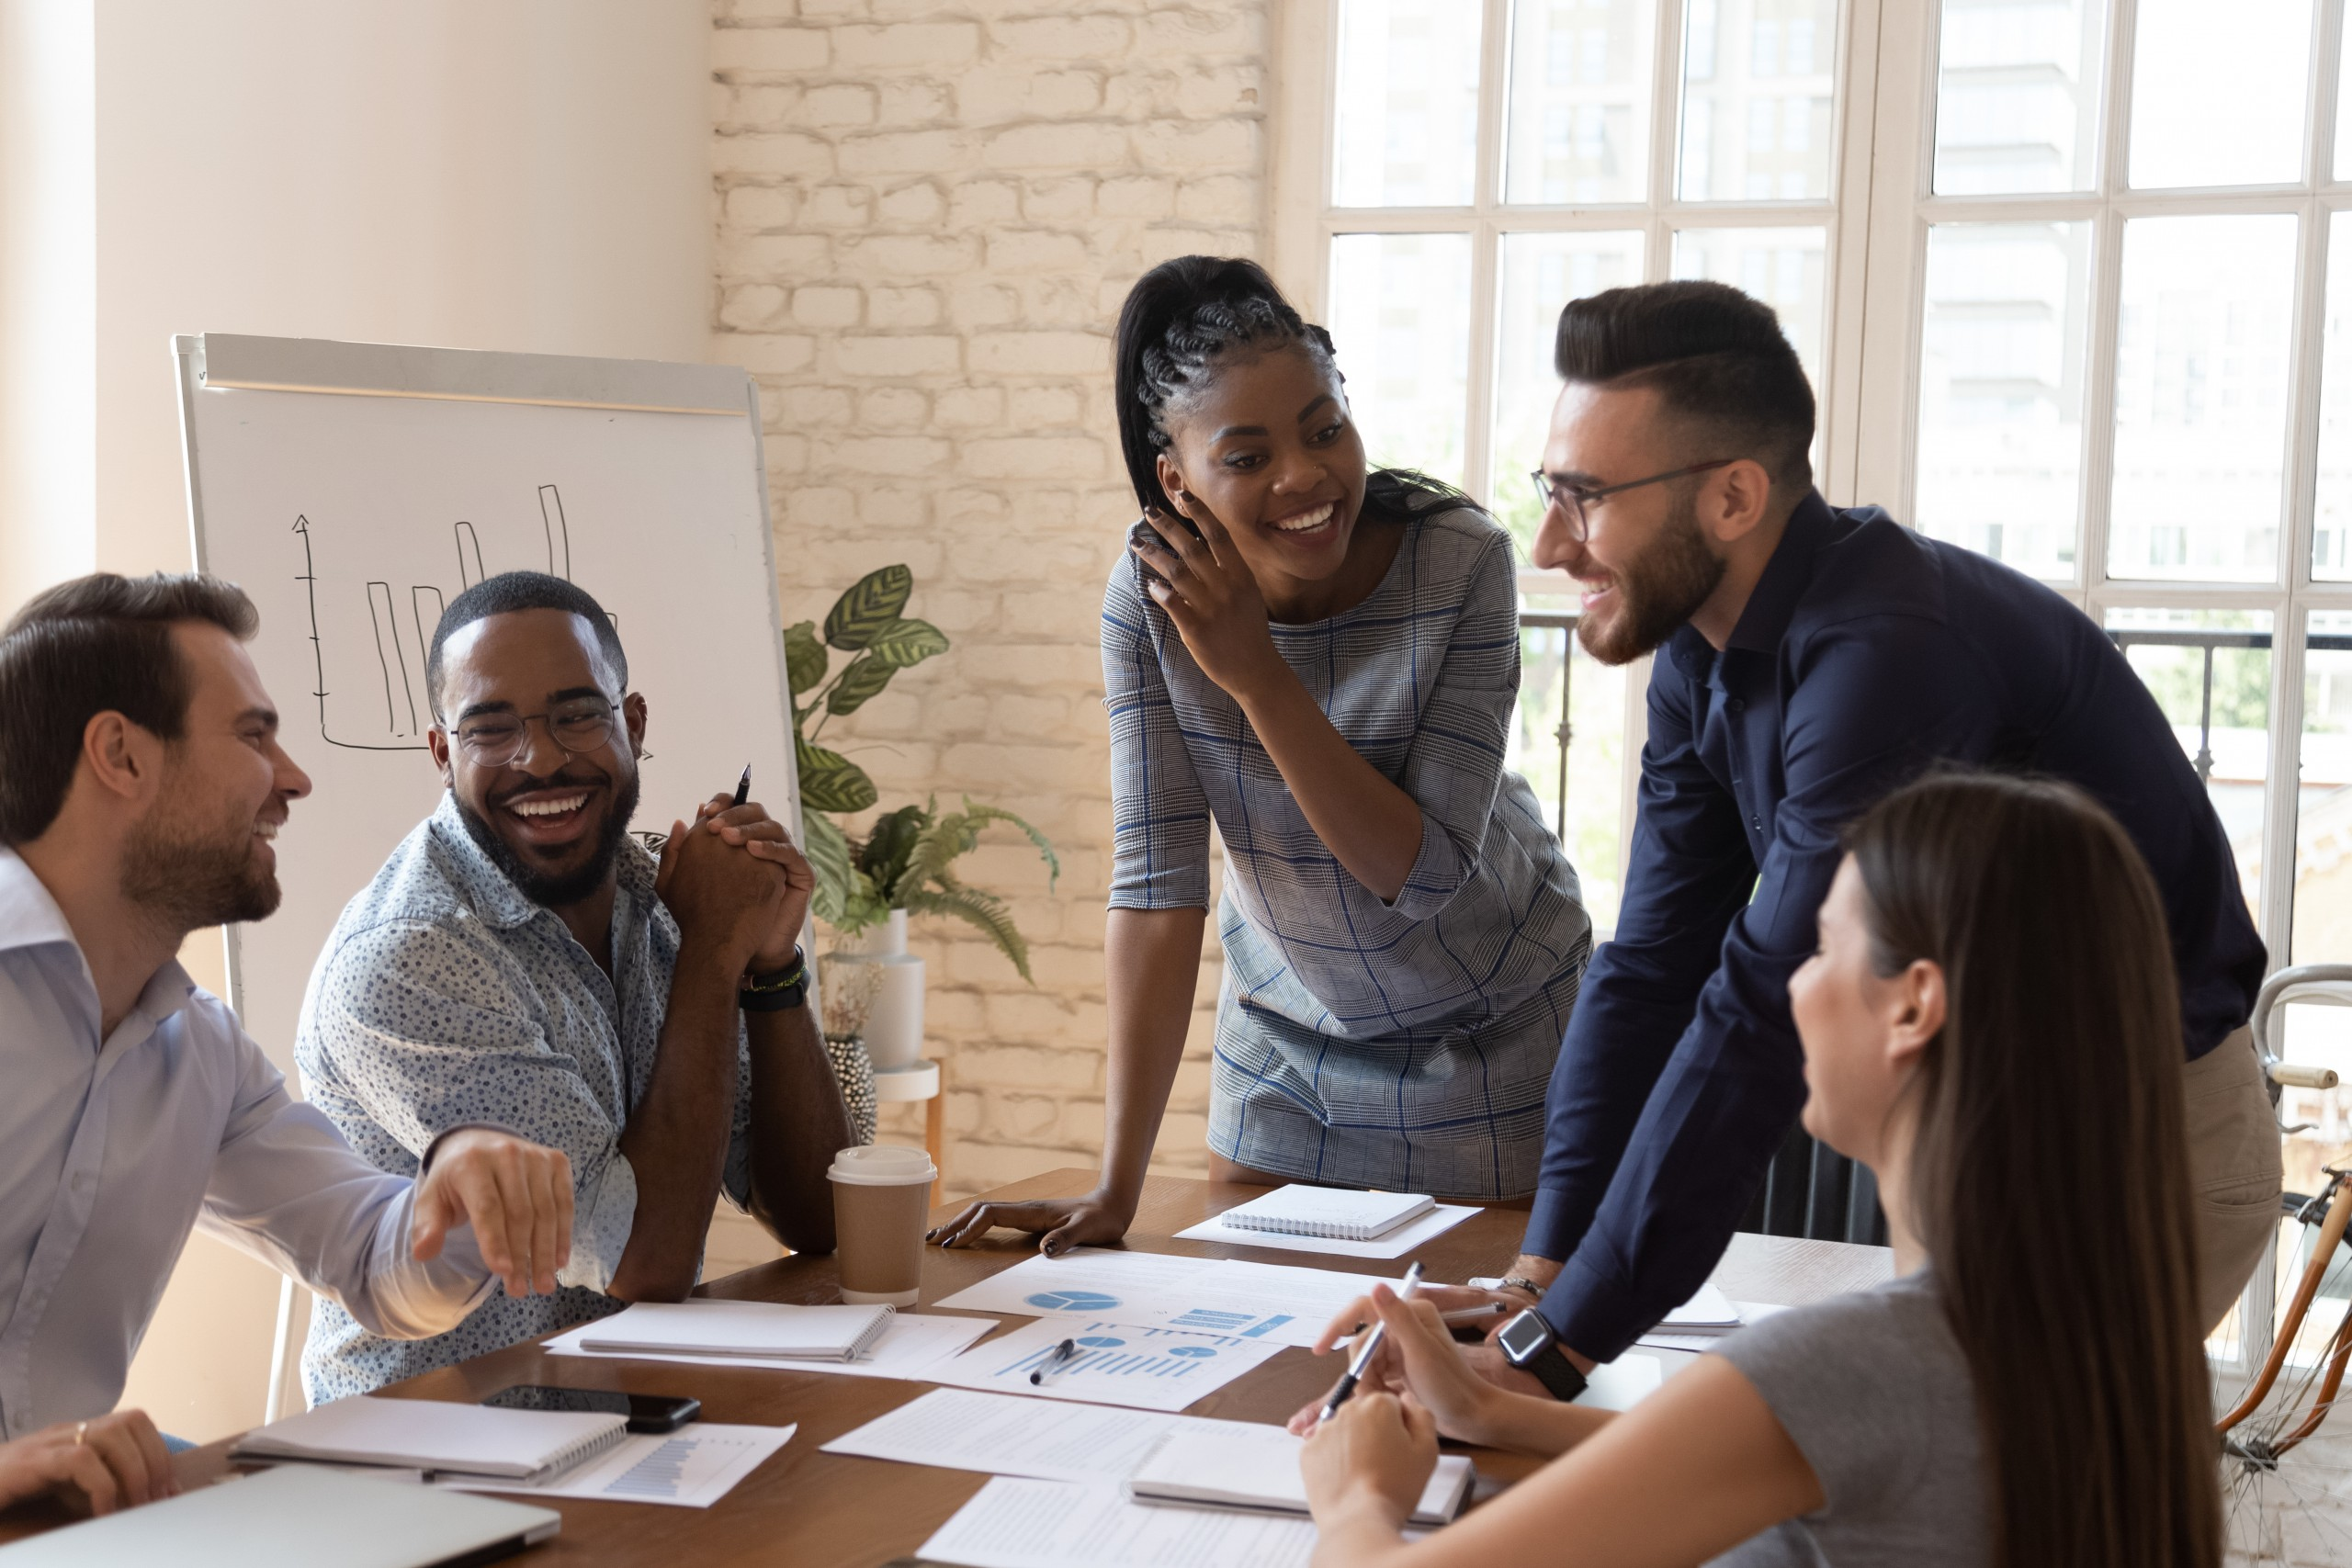 Employees at meeting around desk talking and laughing